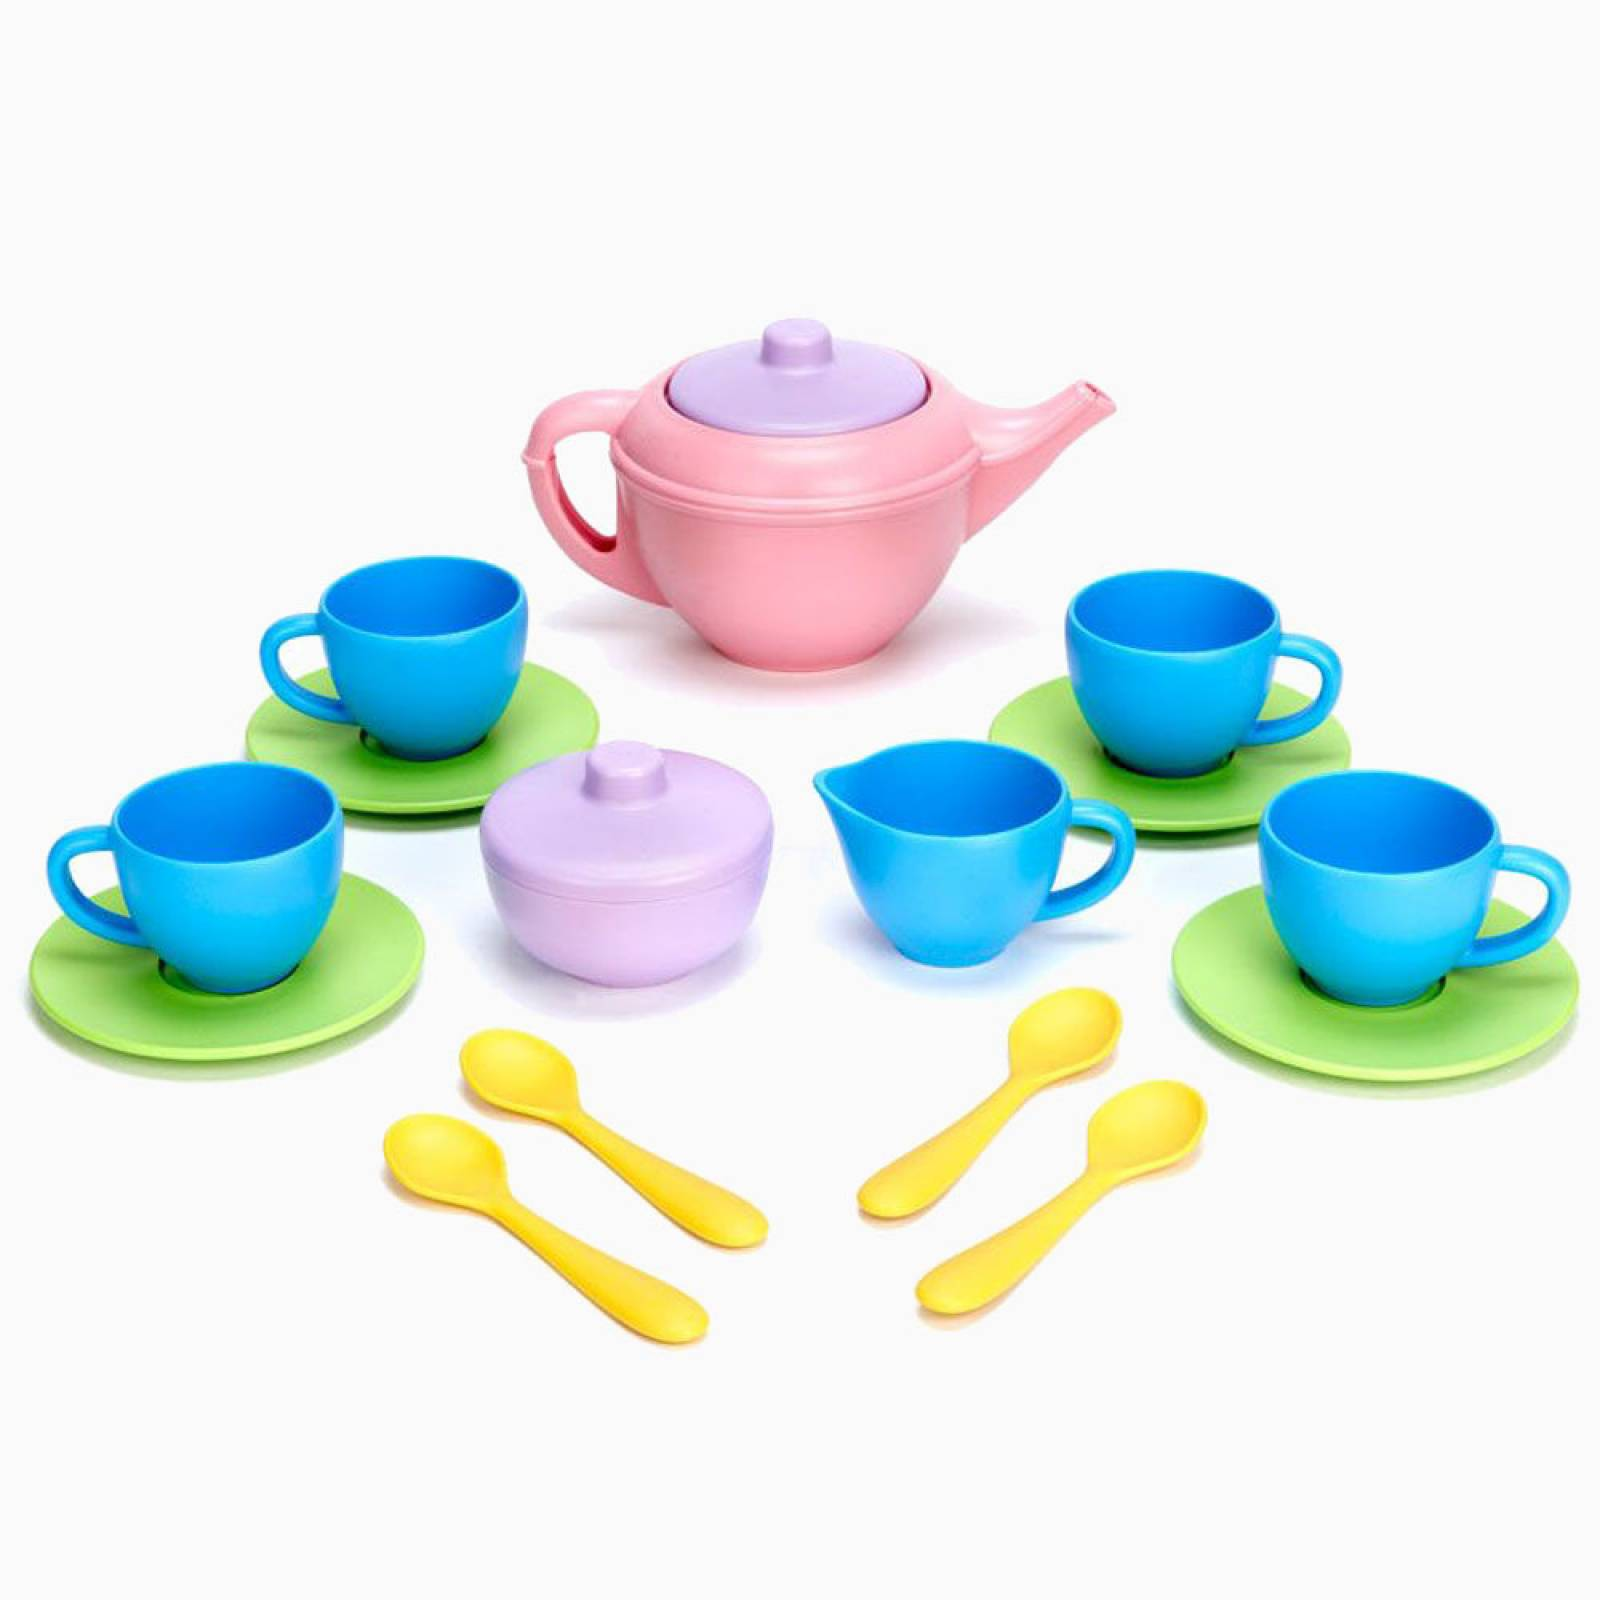 Tea Set With Pink Teapot By Green Toys 17 Pieces 2+